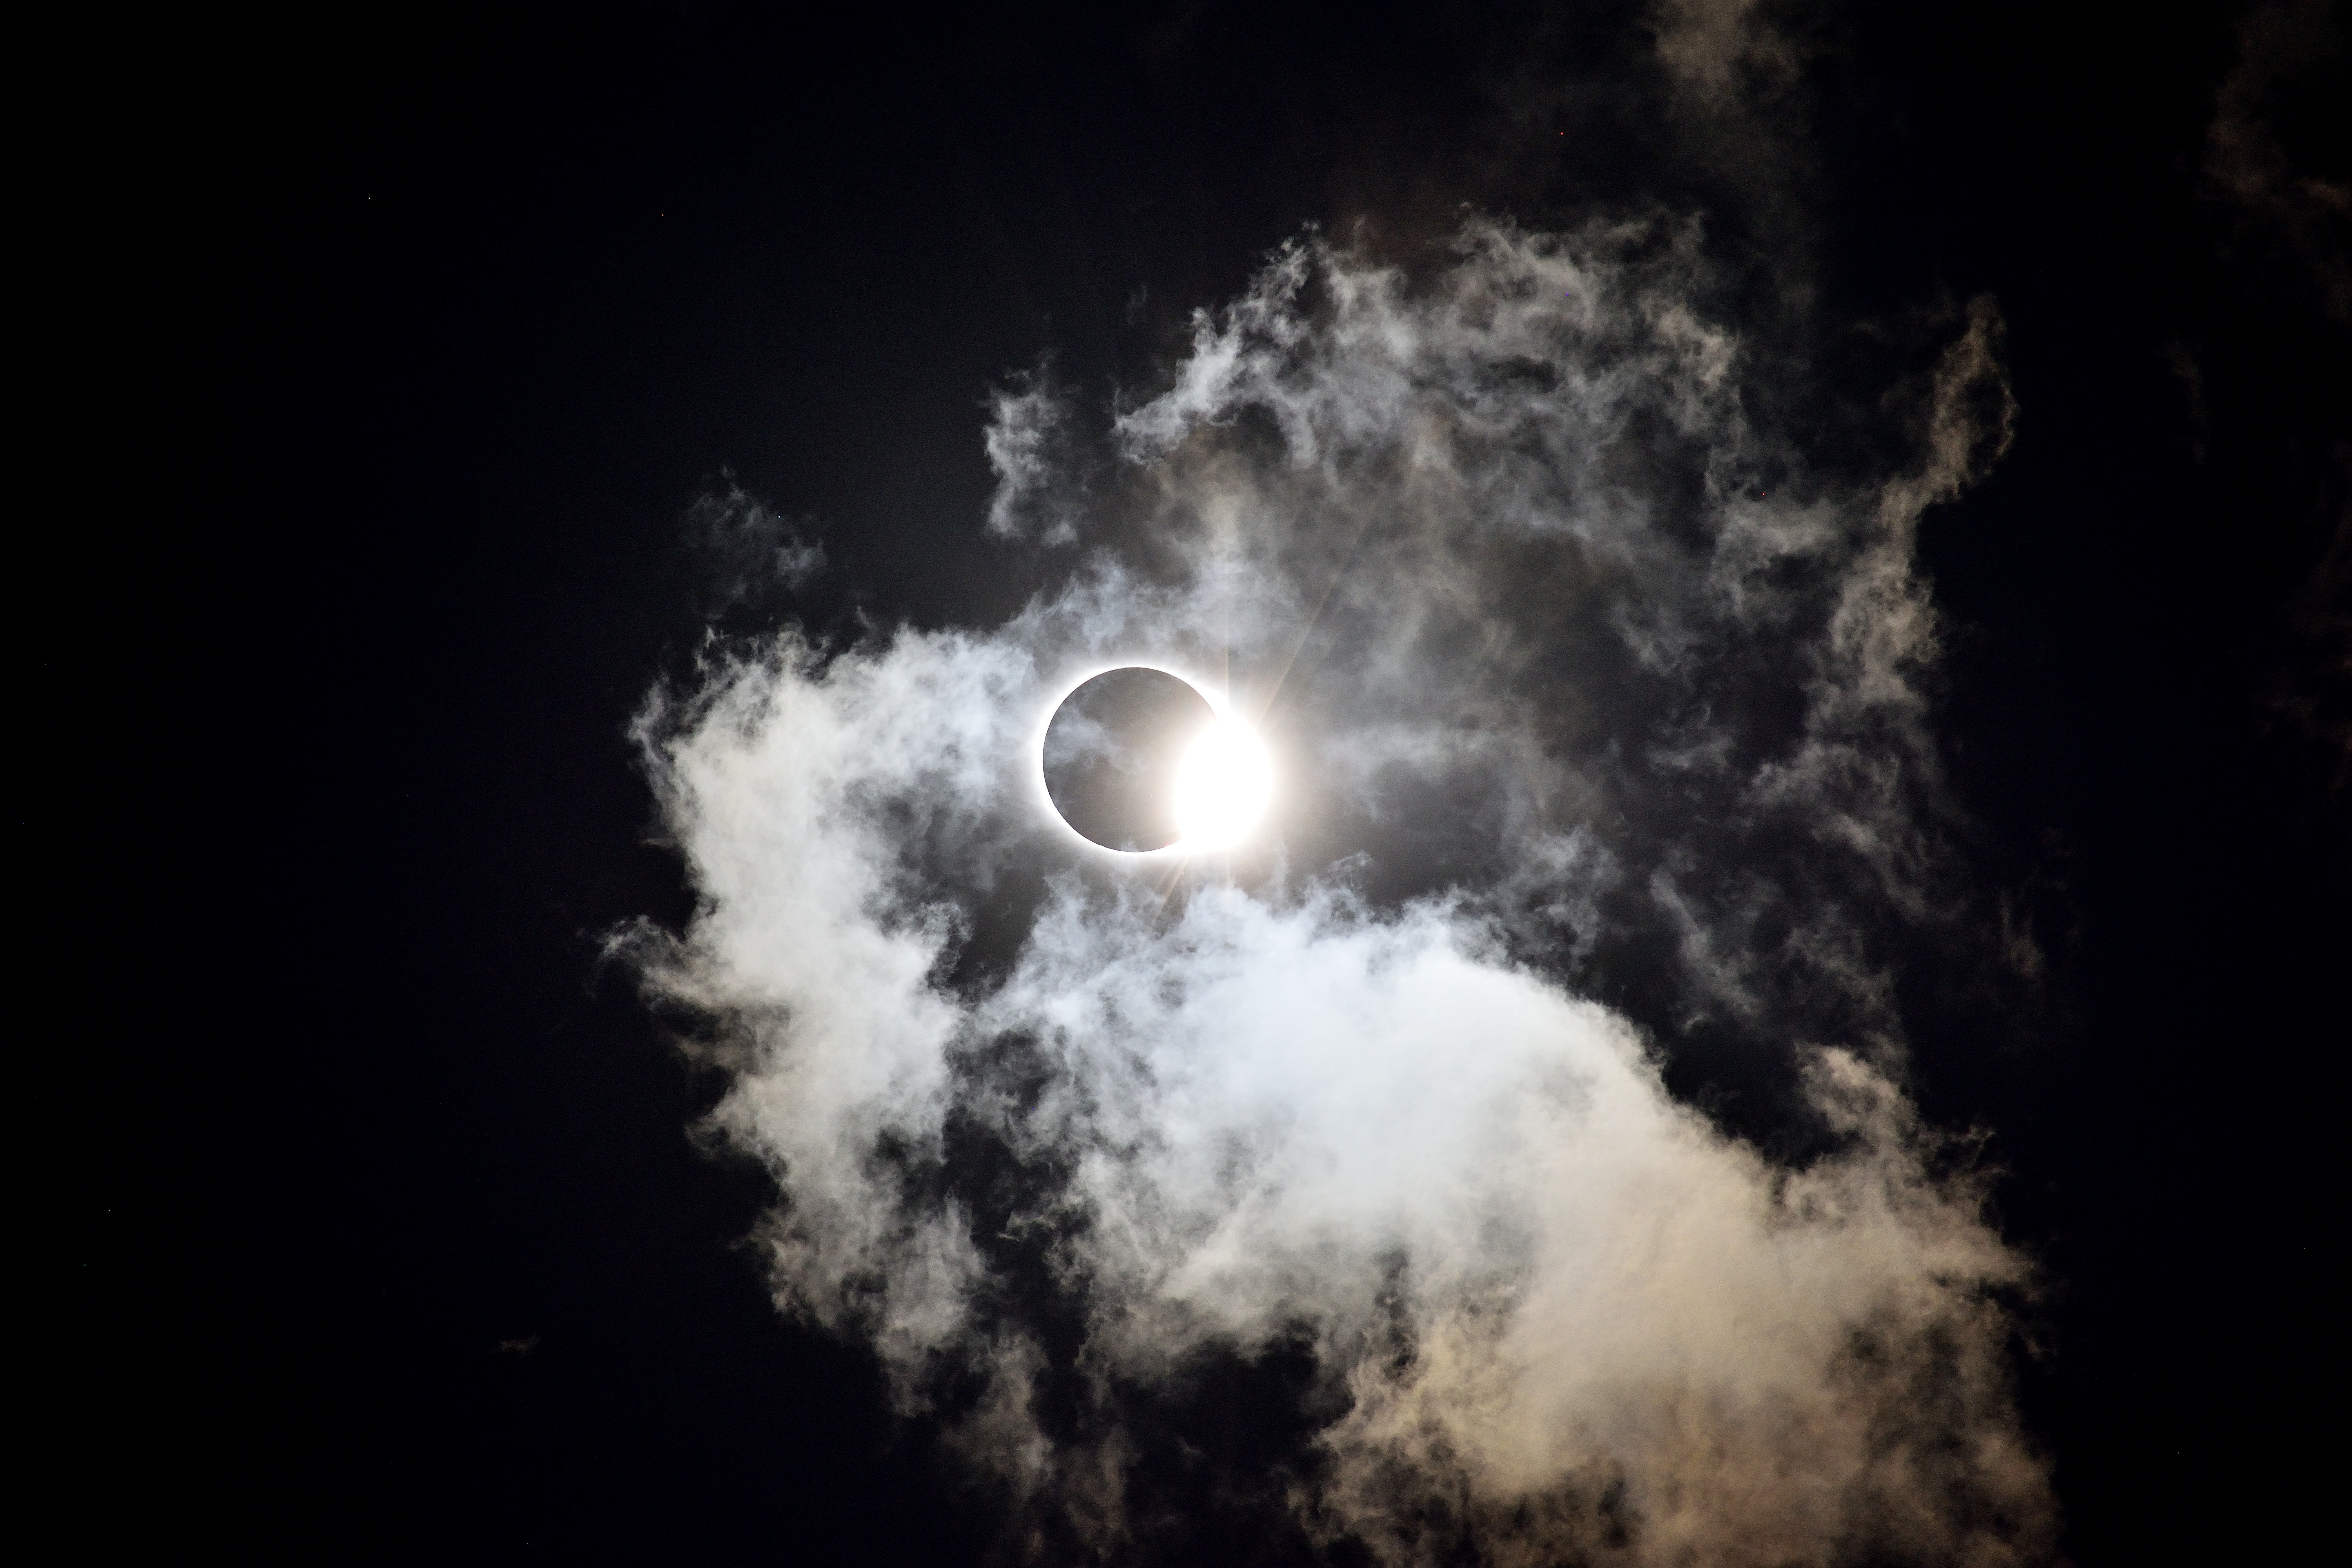 Animals do strange things during lunar and solar eclipses